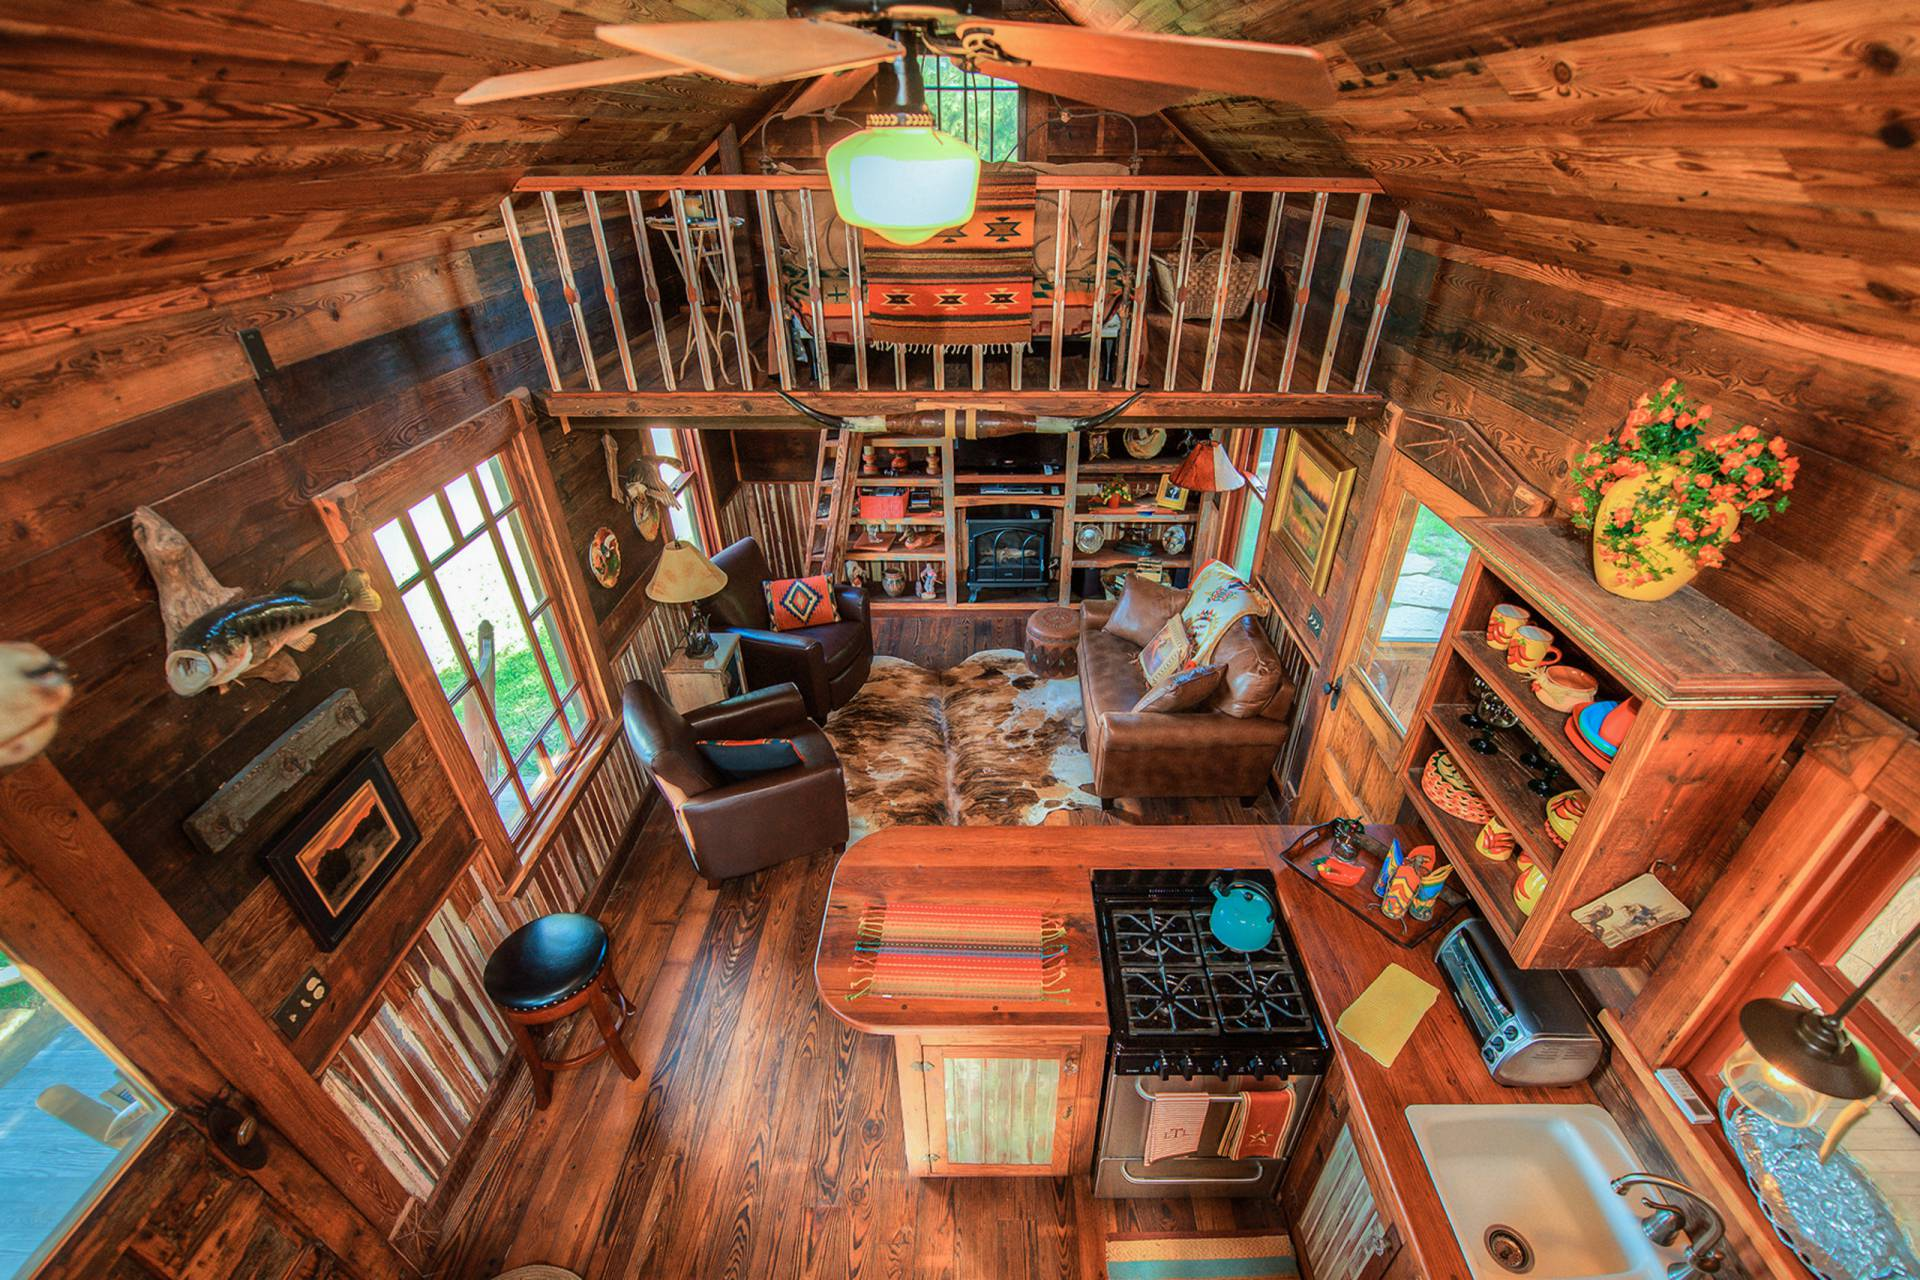 The Rustic Cowboy Cabin Was Built From Salvaged Materials. The 12u0027x28u0027 Cabin